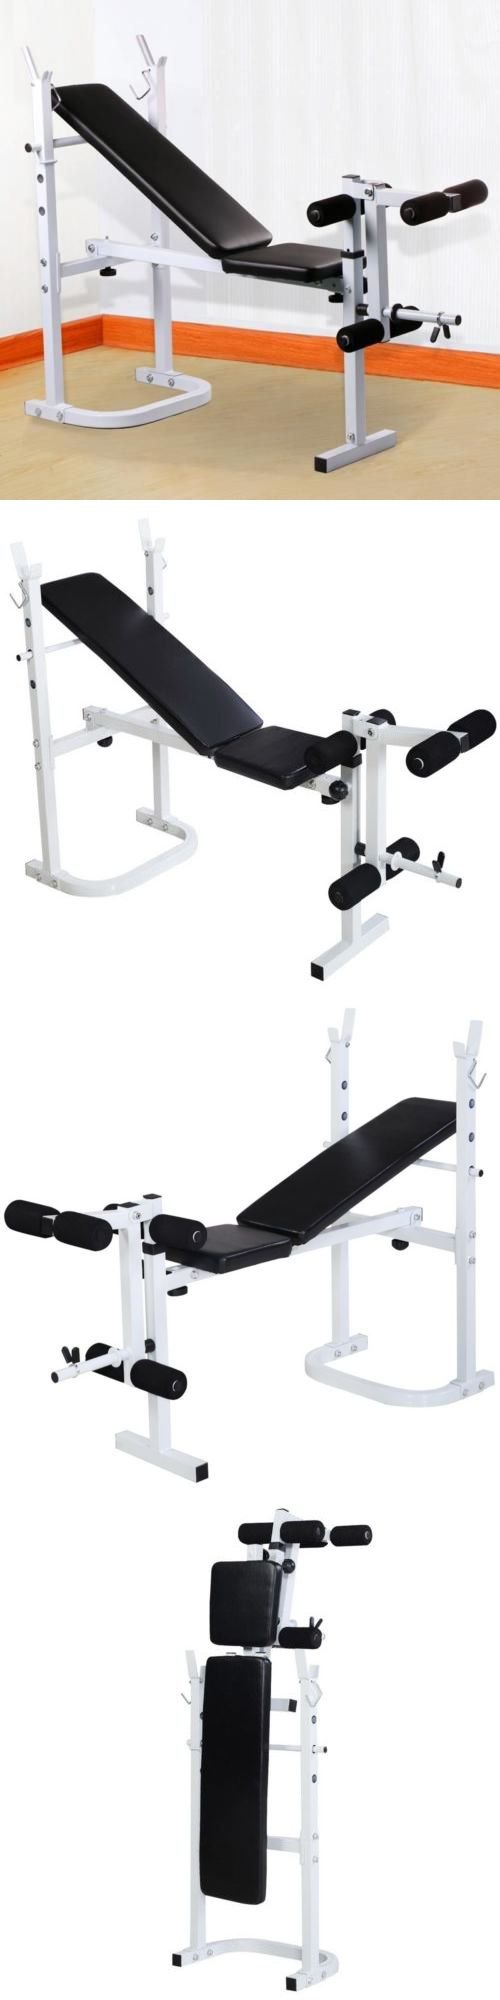 Benches 15281: Adjustable Weight Lifting Multi-Function Bench Fitness Exercise Strength Workout -> BUY IT NOW ONLY: $63.99 on eBay!